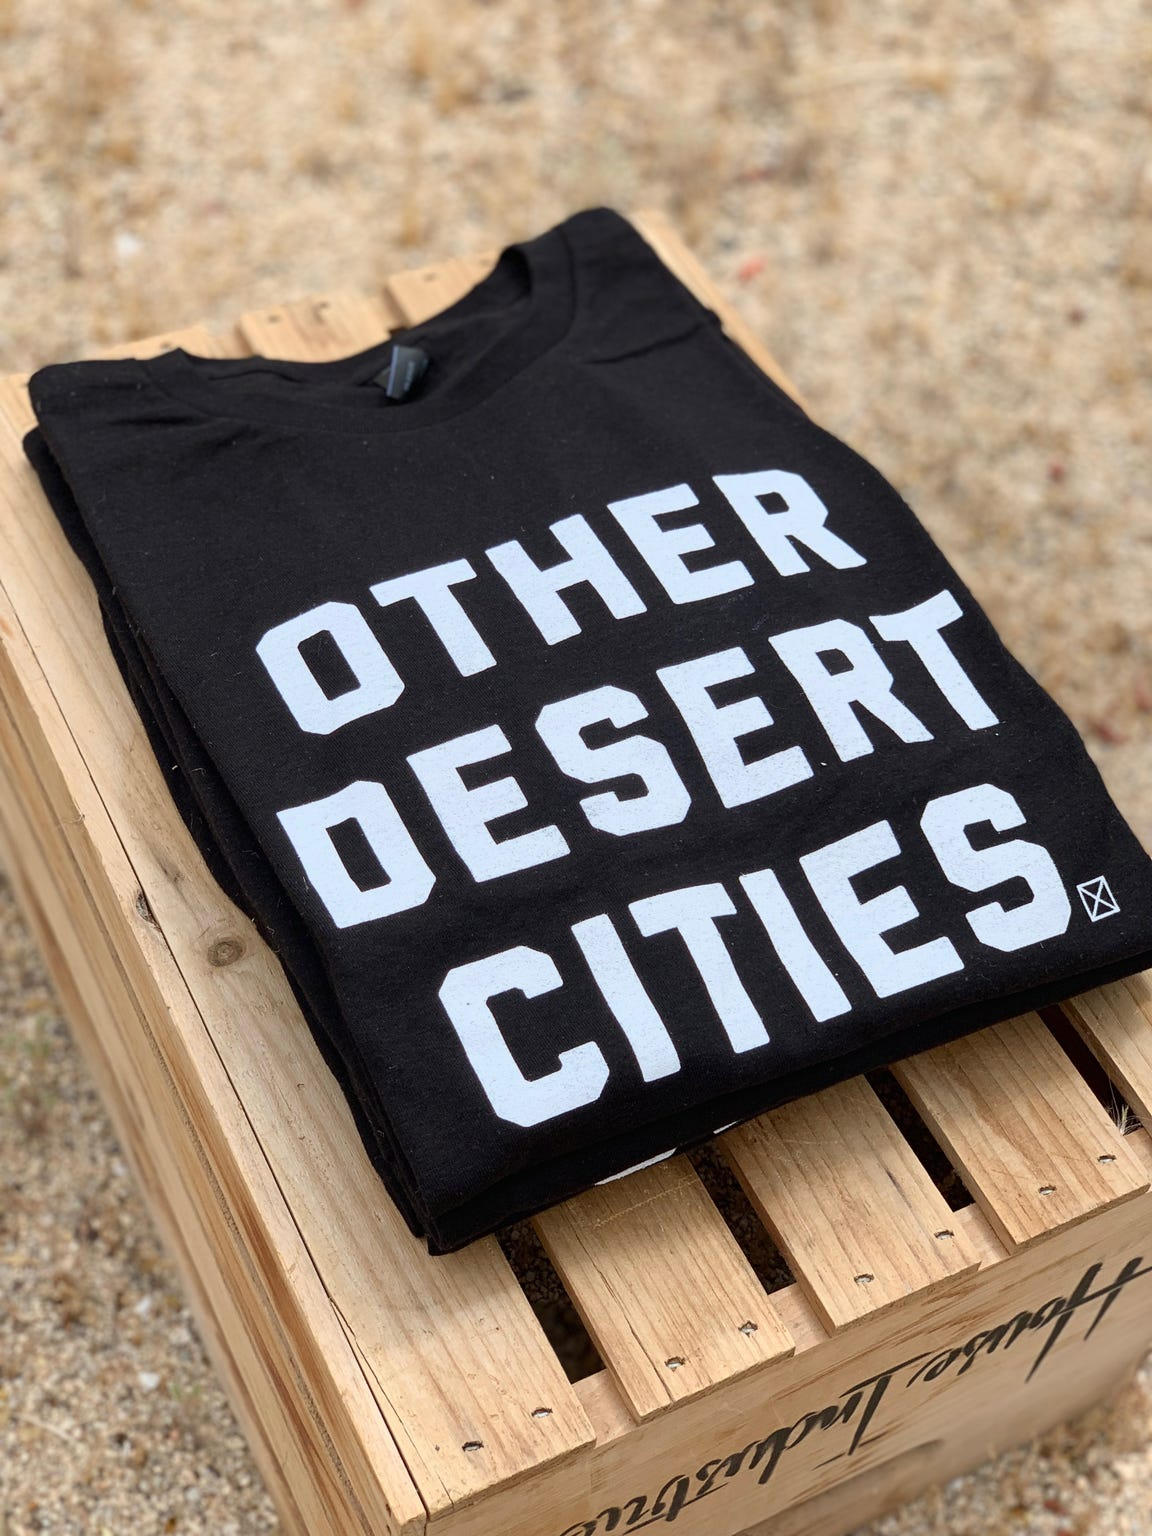 """'Other Desert Cities' T-shirt creator Dana Longuevan says she """"decided to design and print the shirts as a local pride project."""""""